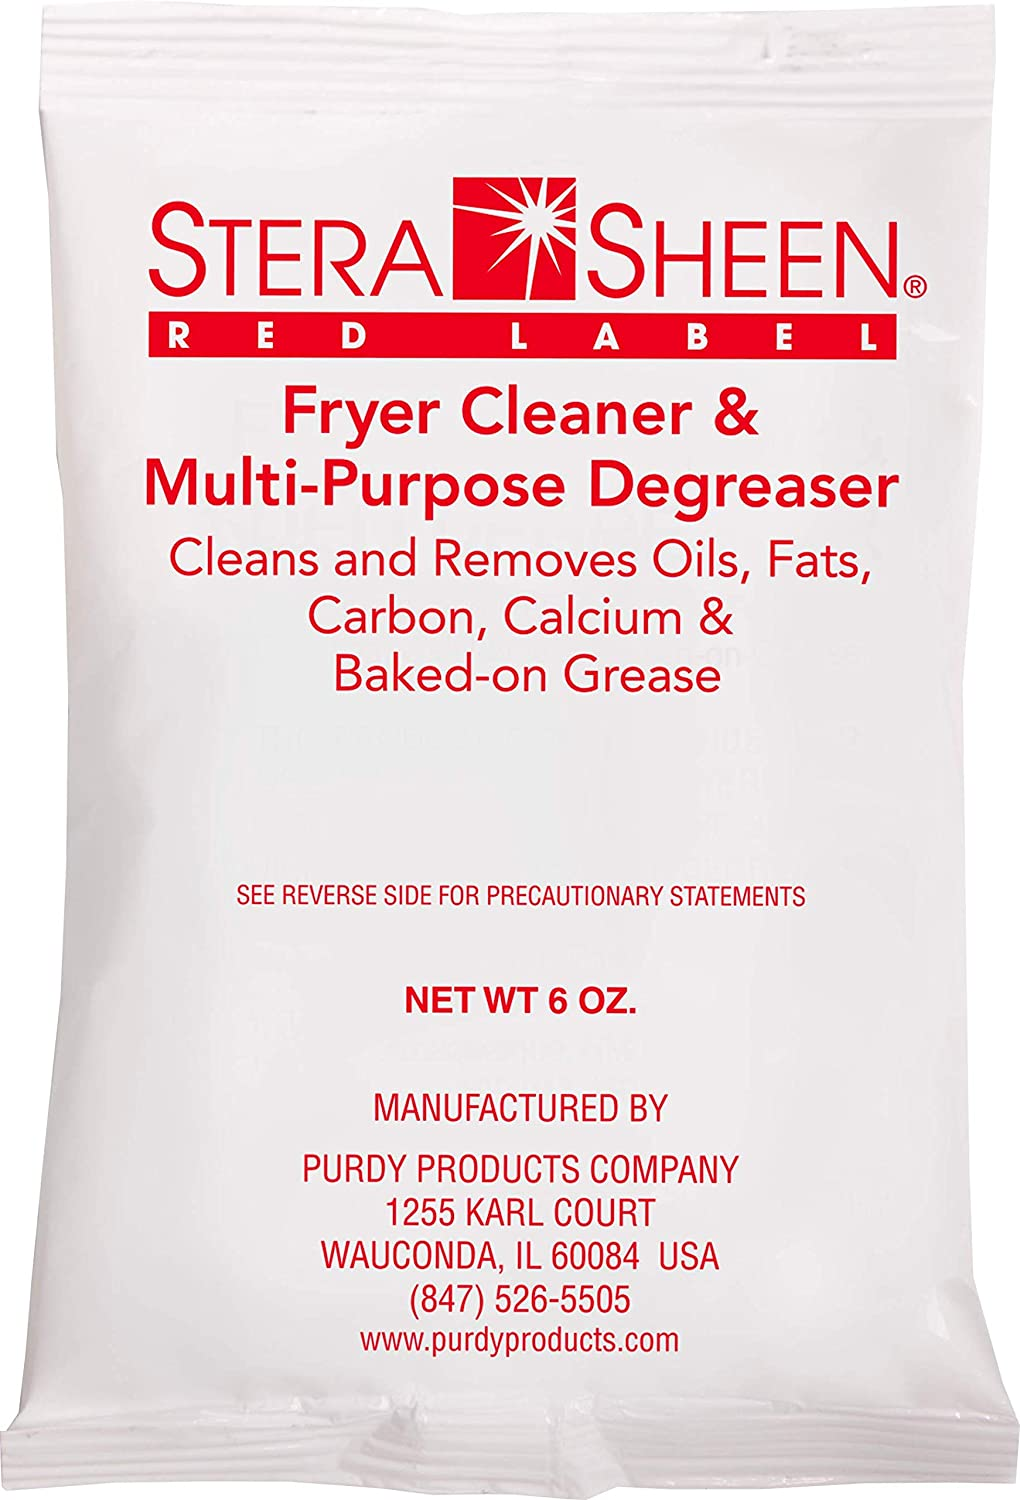 Stera-Sheen Fryer Cleaner | 12 x 6 oz Packets | Stera Red Label Food Grade Fryer & Filter Cleaner Powder & Fryer Boil Out | 321800 by Purdy Products | Portion Packets for easy use | Pack of 12 x 6 oz